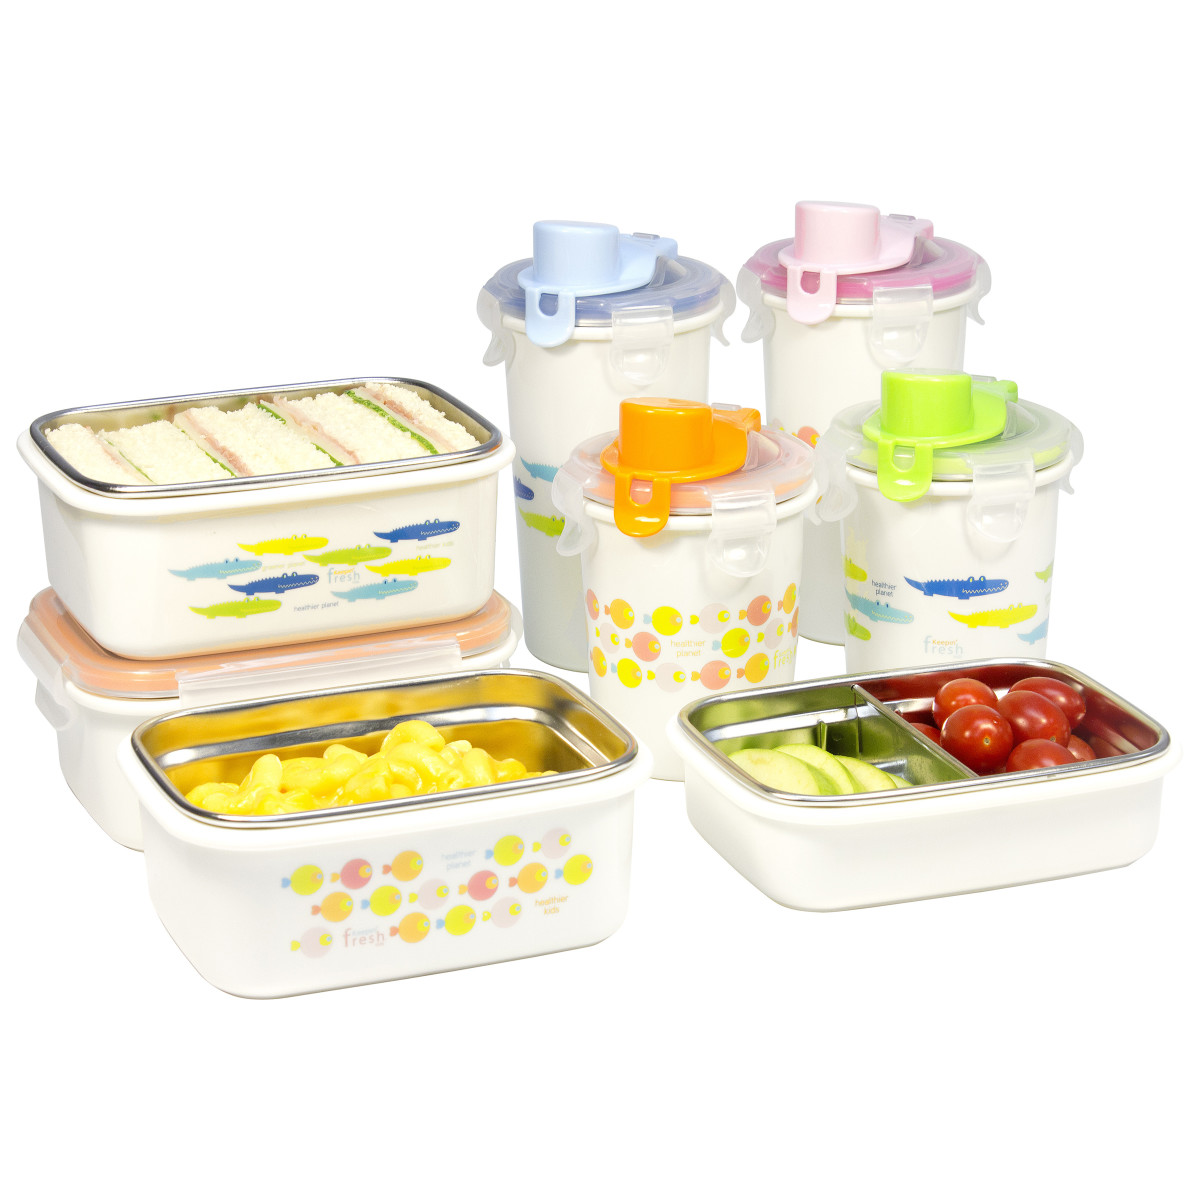 Keepin' Fresh Stainless Bento Collection by Innobaby